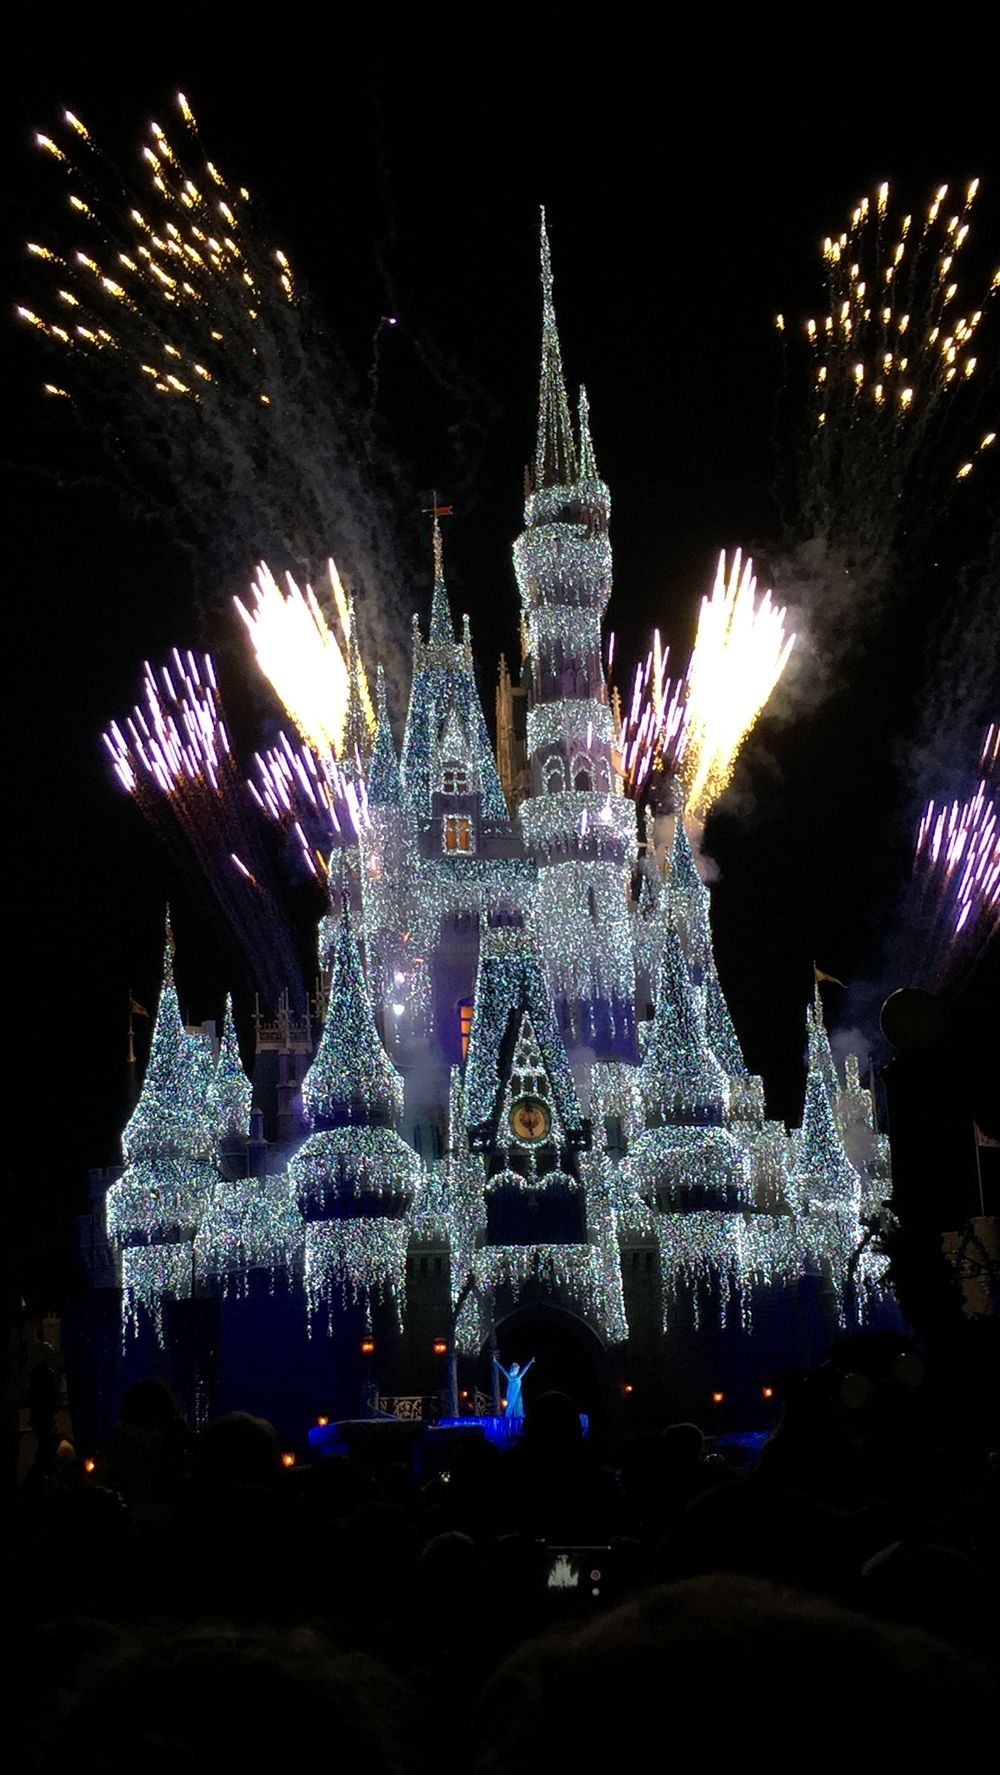 I've never seen Cinderella's Castle look so beautiful. During the holidays, Elsa turns the castle into her own frozen palace.